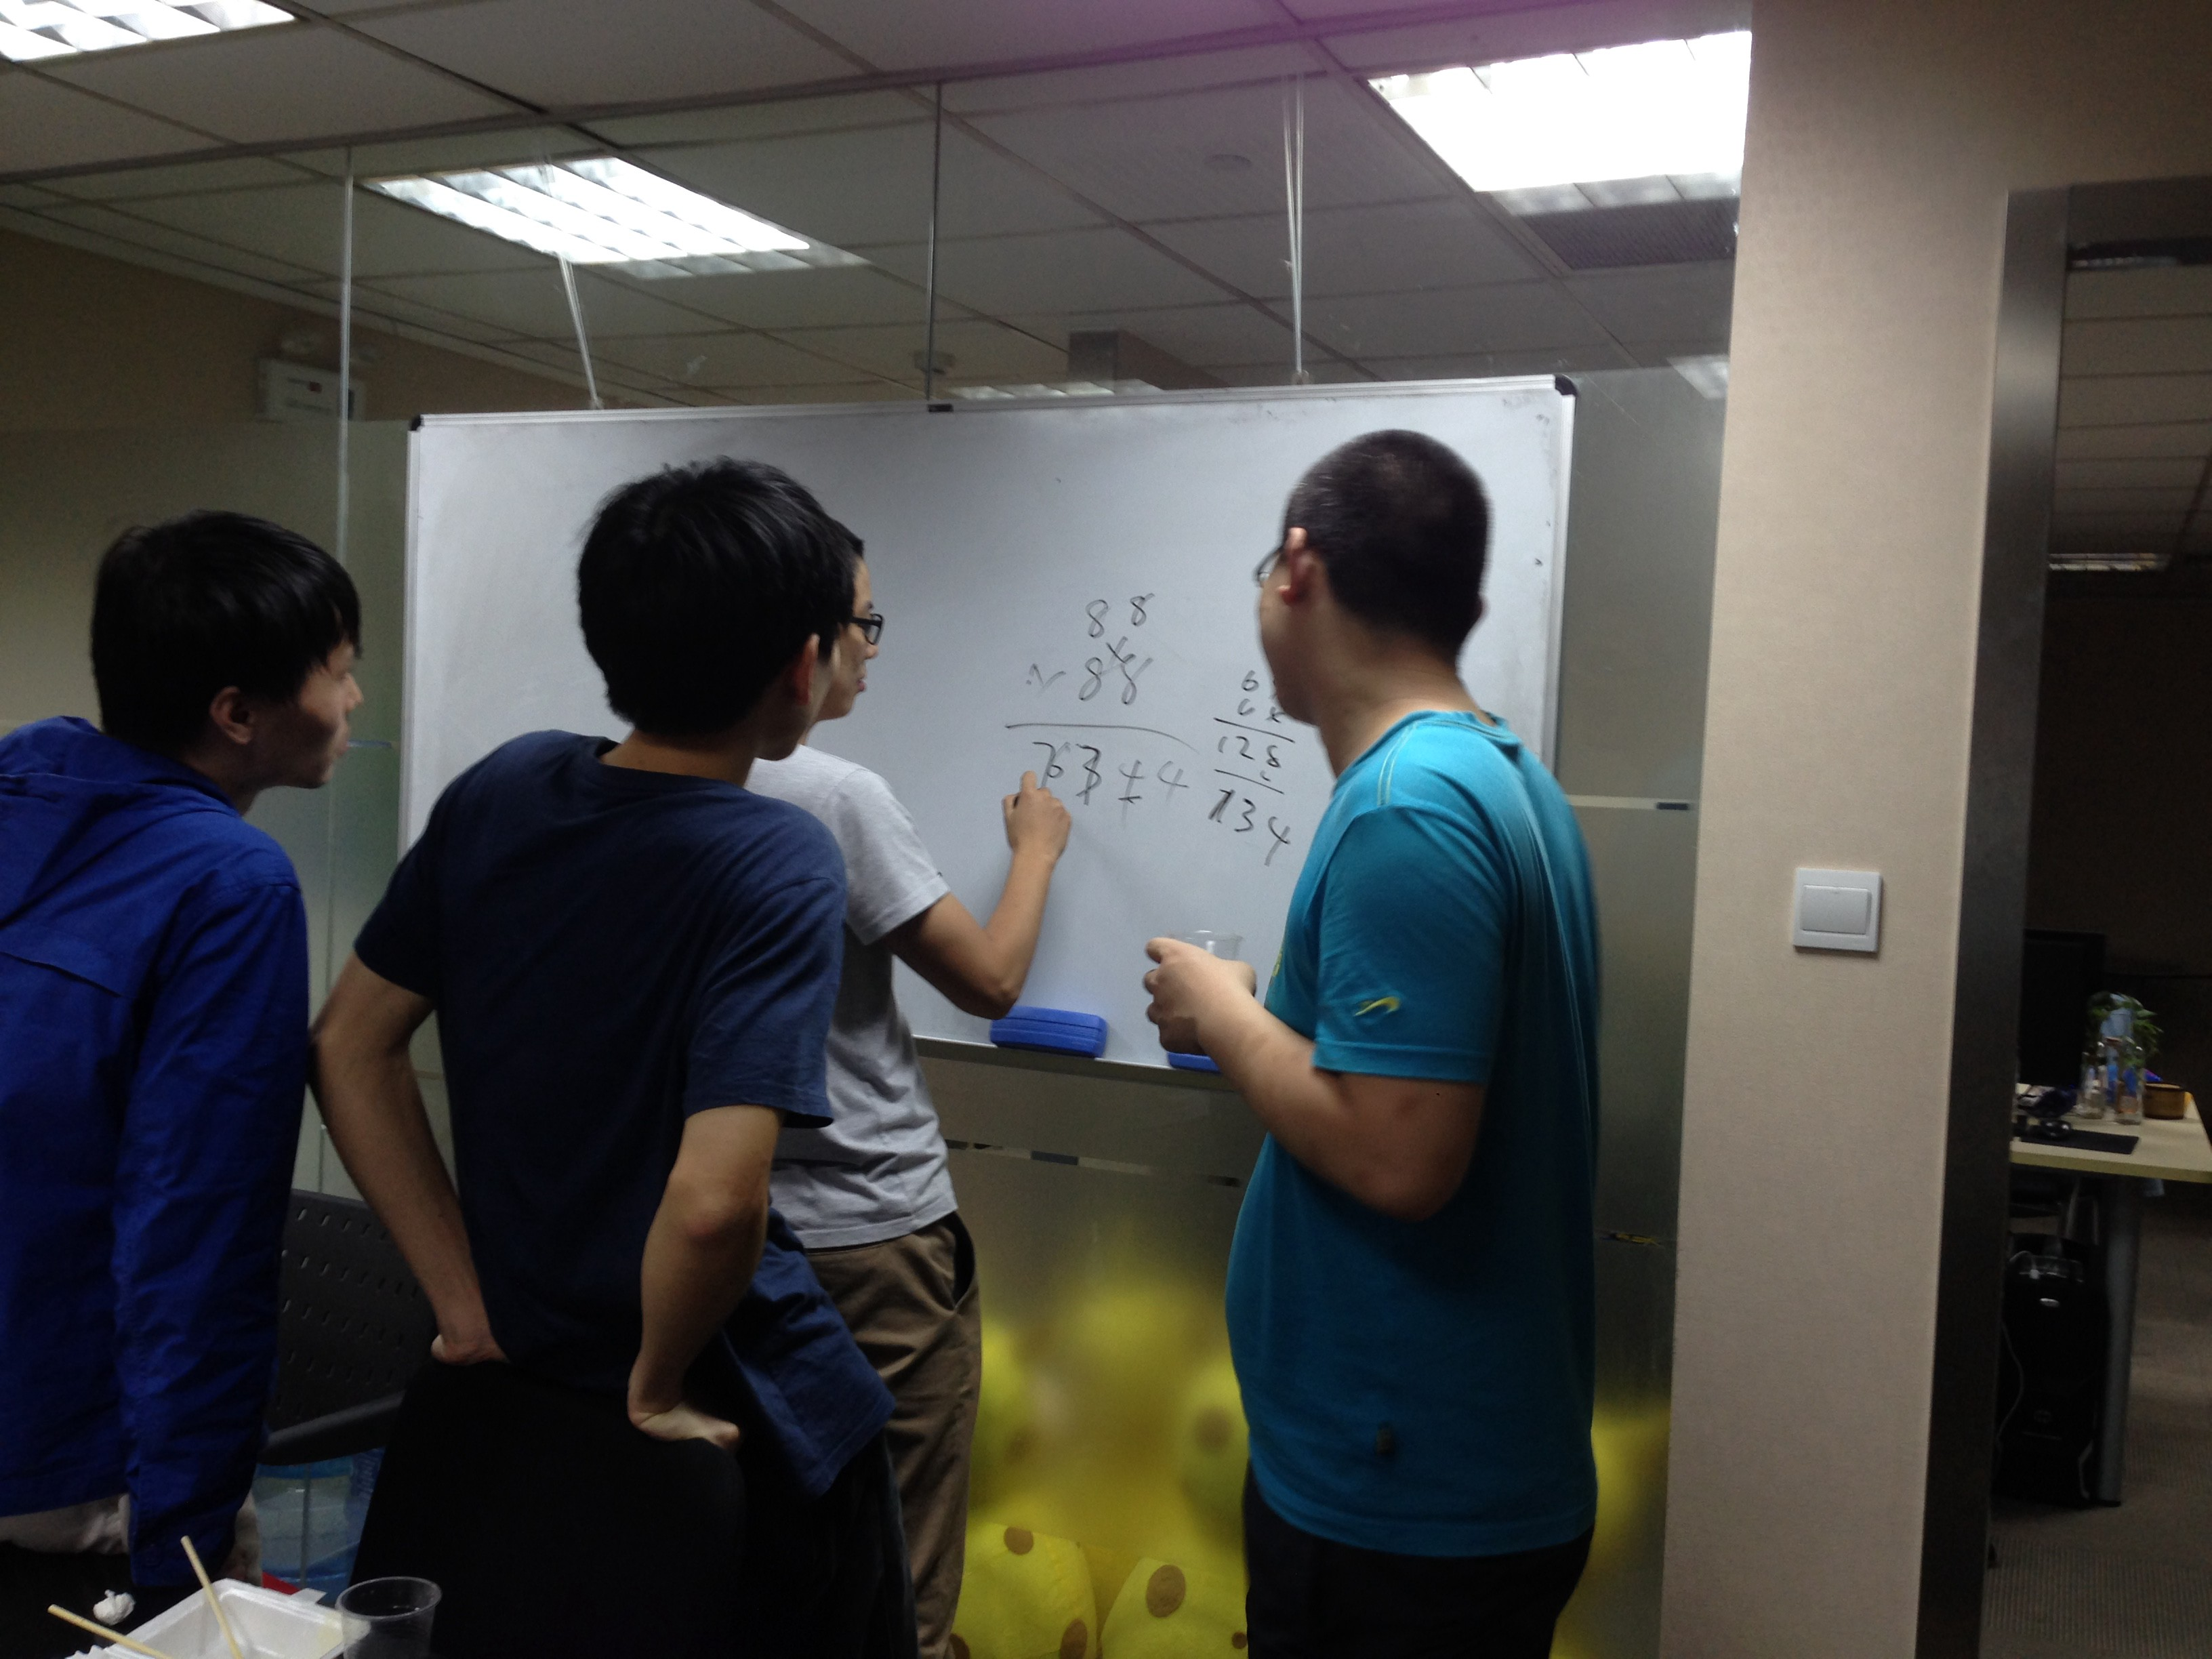 A late night debate between our head of QA (holding marker) and CTO (right) about the fastest way to multiply large numbers mentally